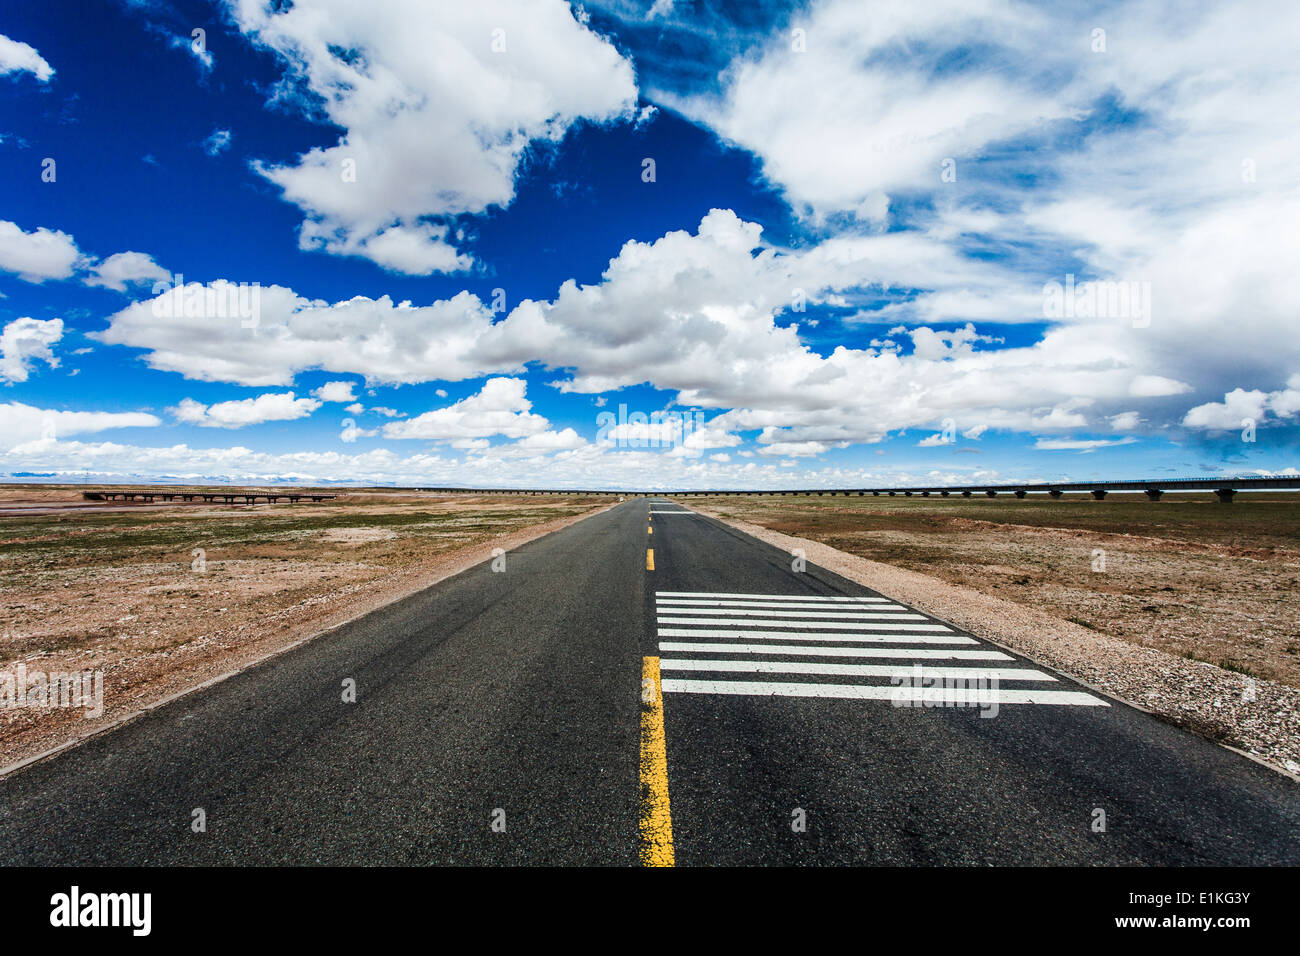 Road in Tibet, China - Stock Image